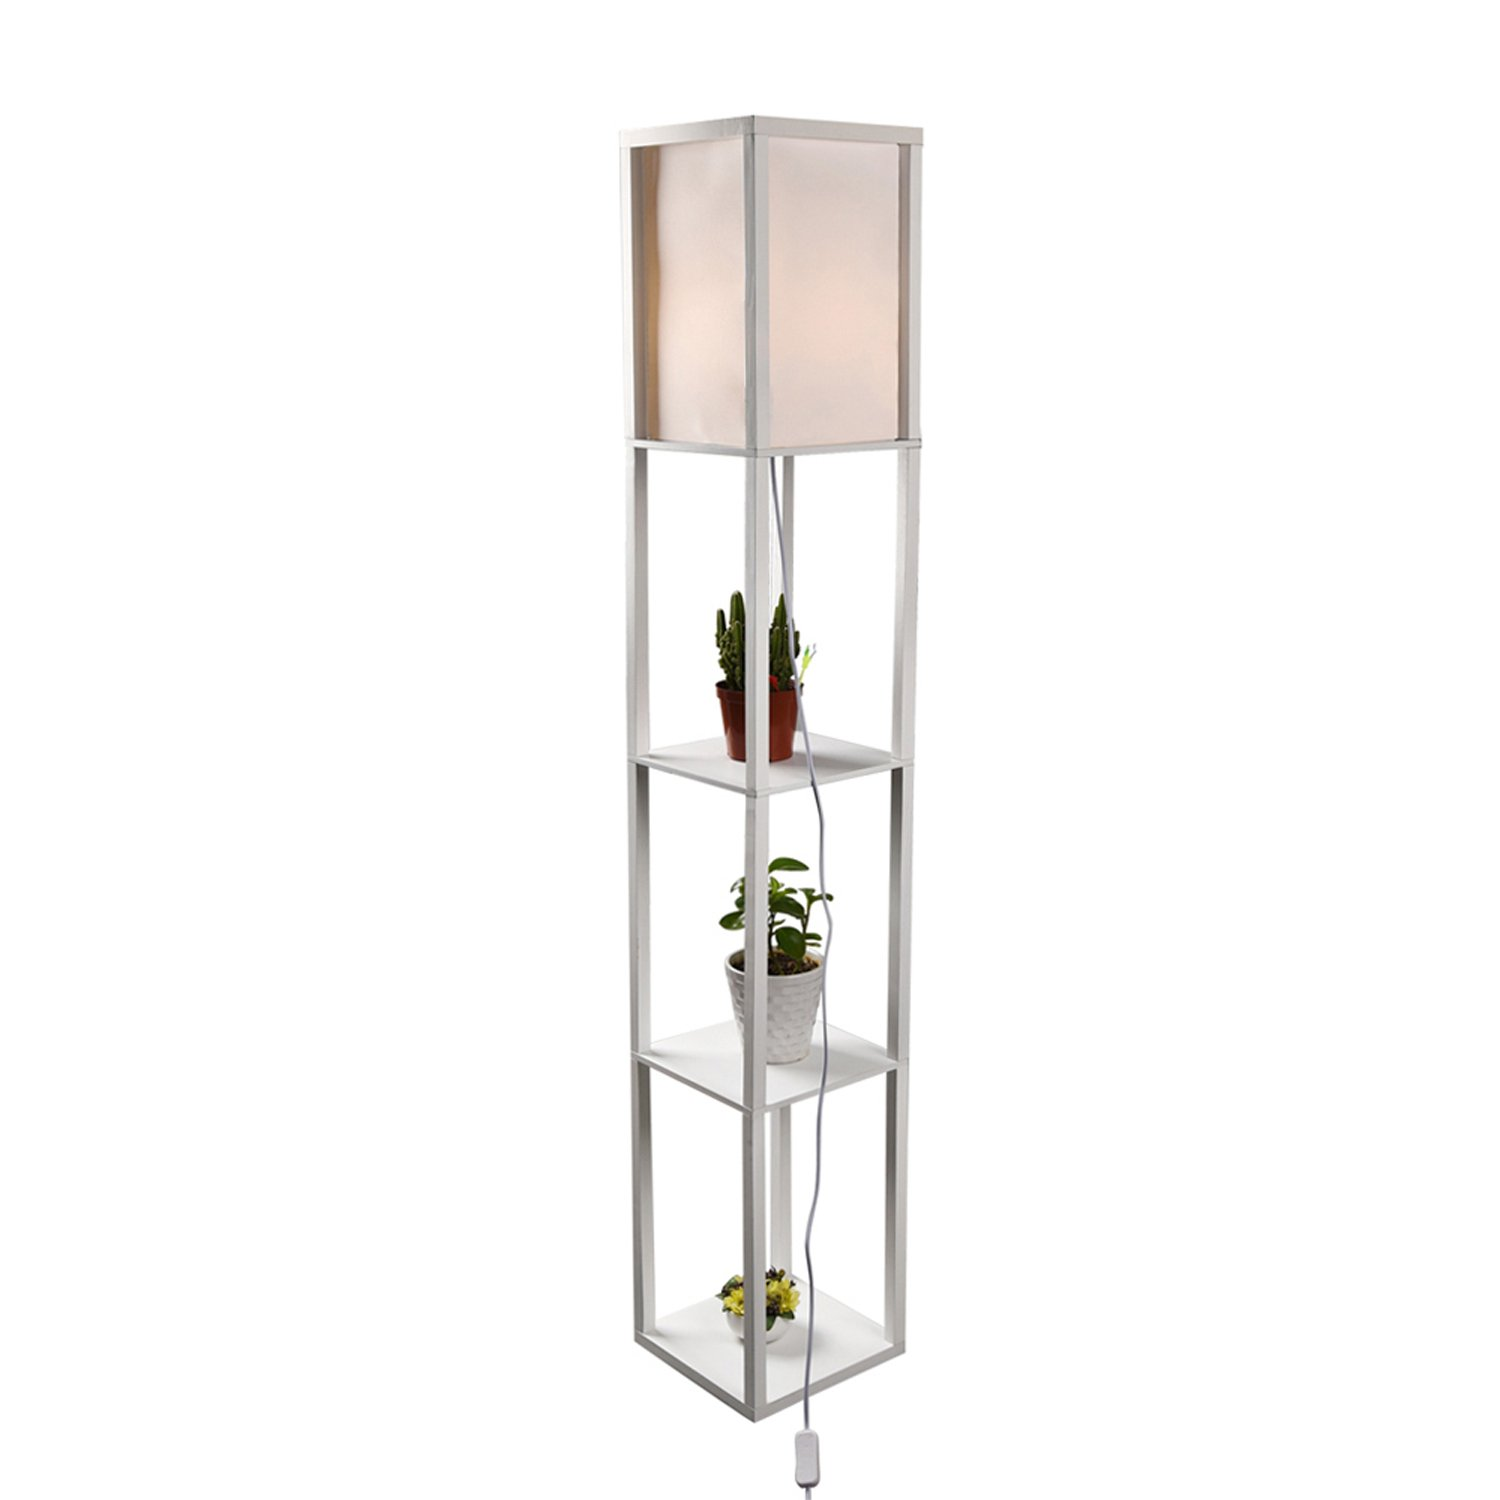 Shelf Floor Lamp with Linen Shade, UL Listed, Wooden Frame, 63 Inch Height, Switch on/off, Etagere Organizer Shelf, Black (White)